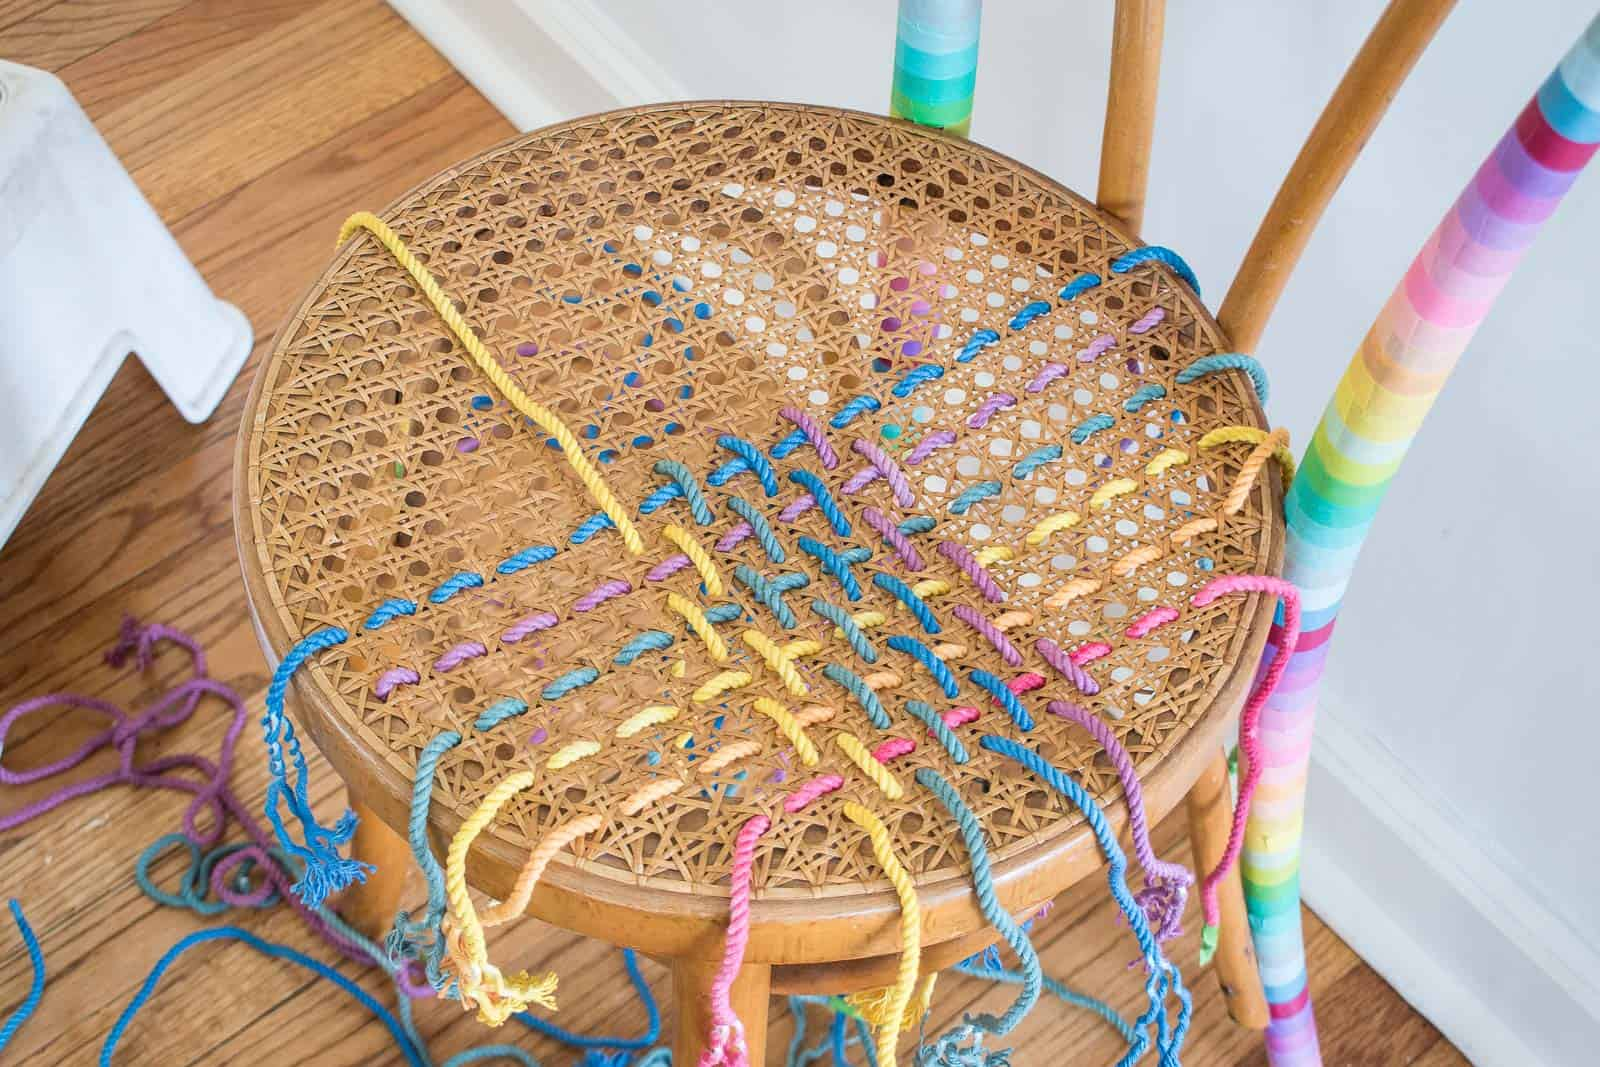 finding a pattern for weaving rope through the cane seat